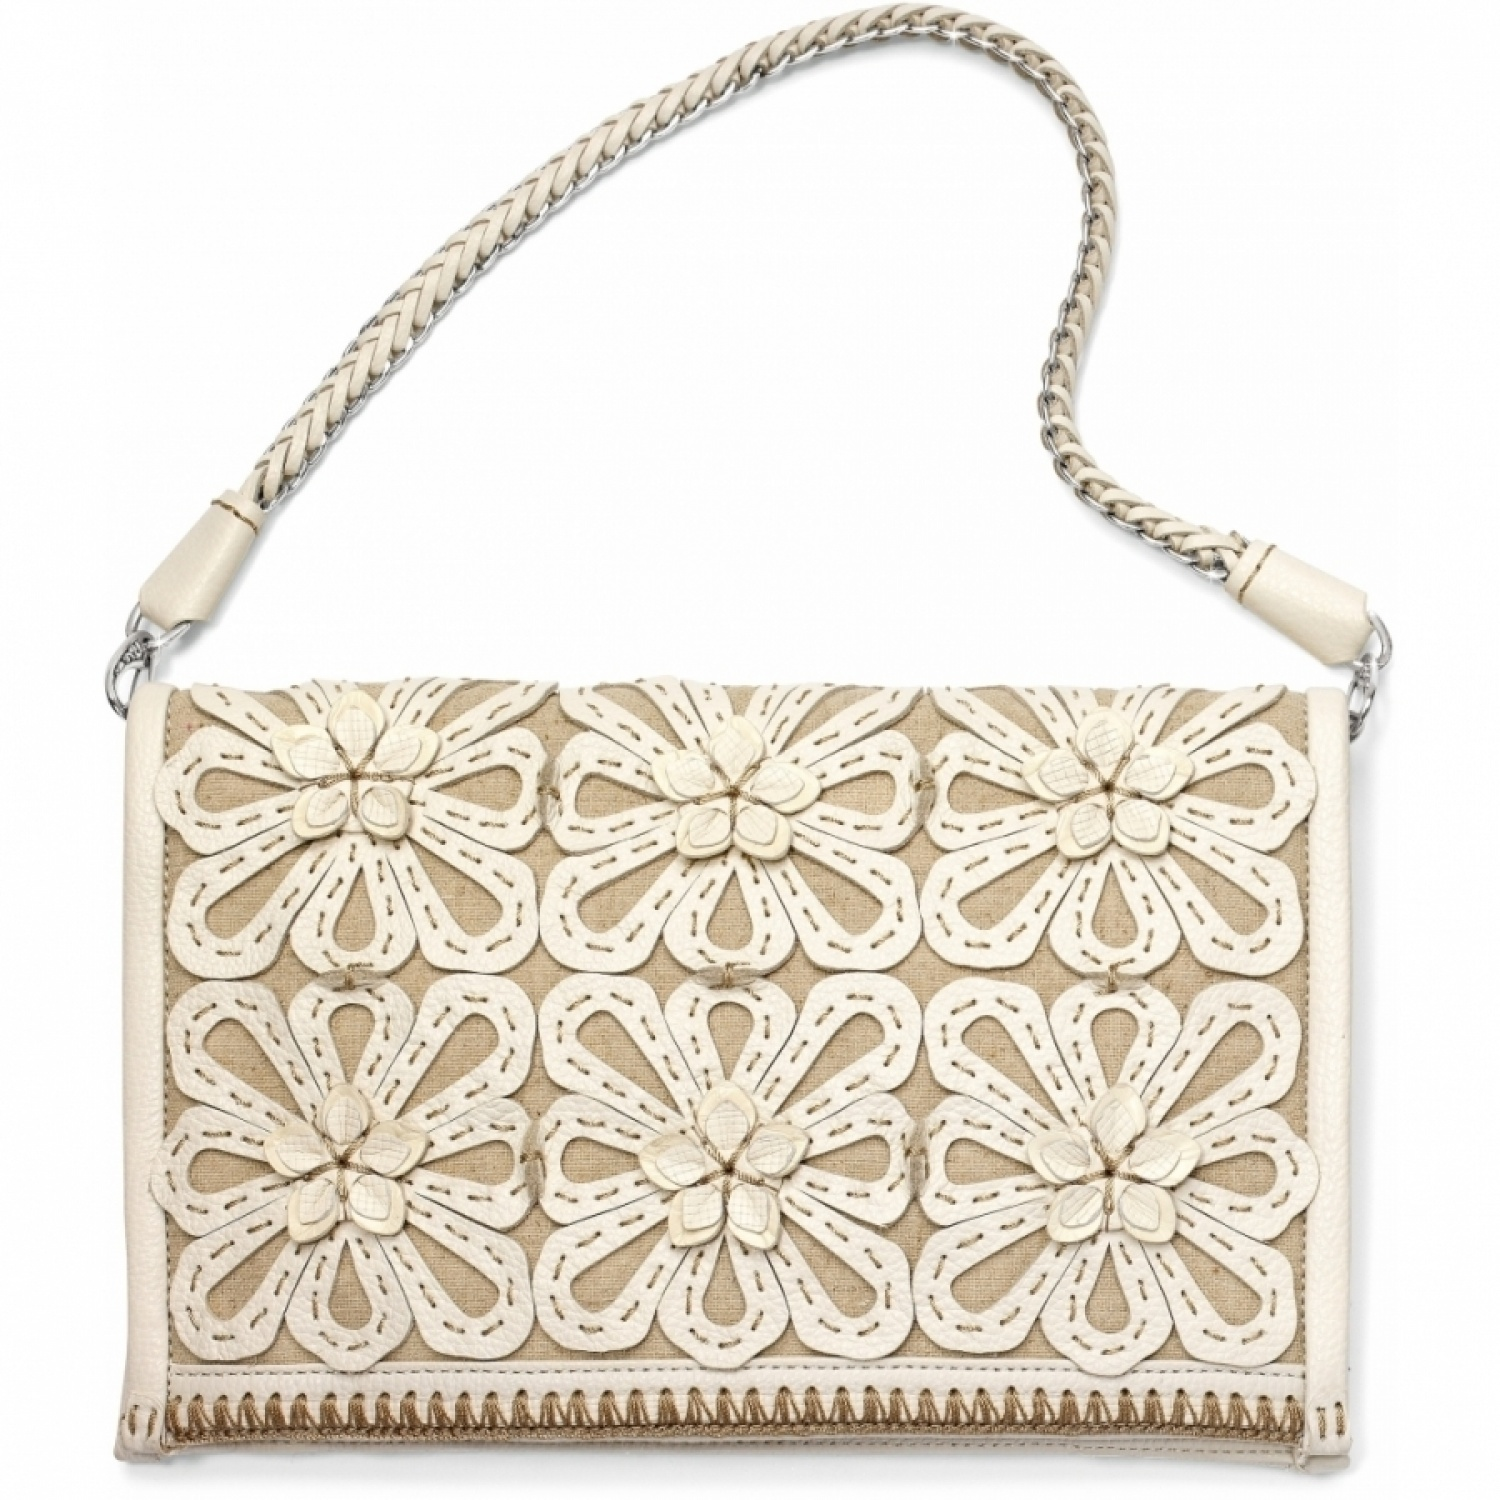 small bags glory of the garden elaine soft clutch aalbupy